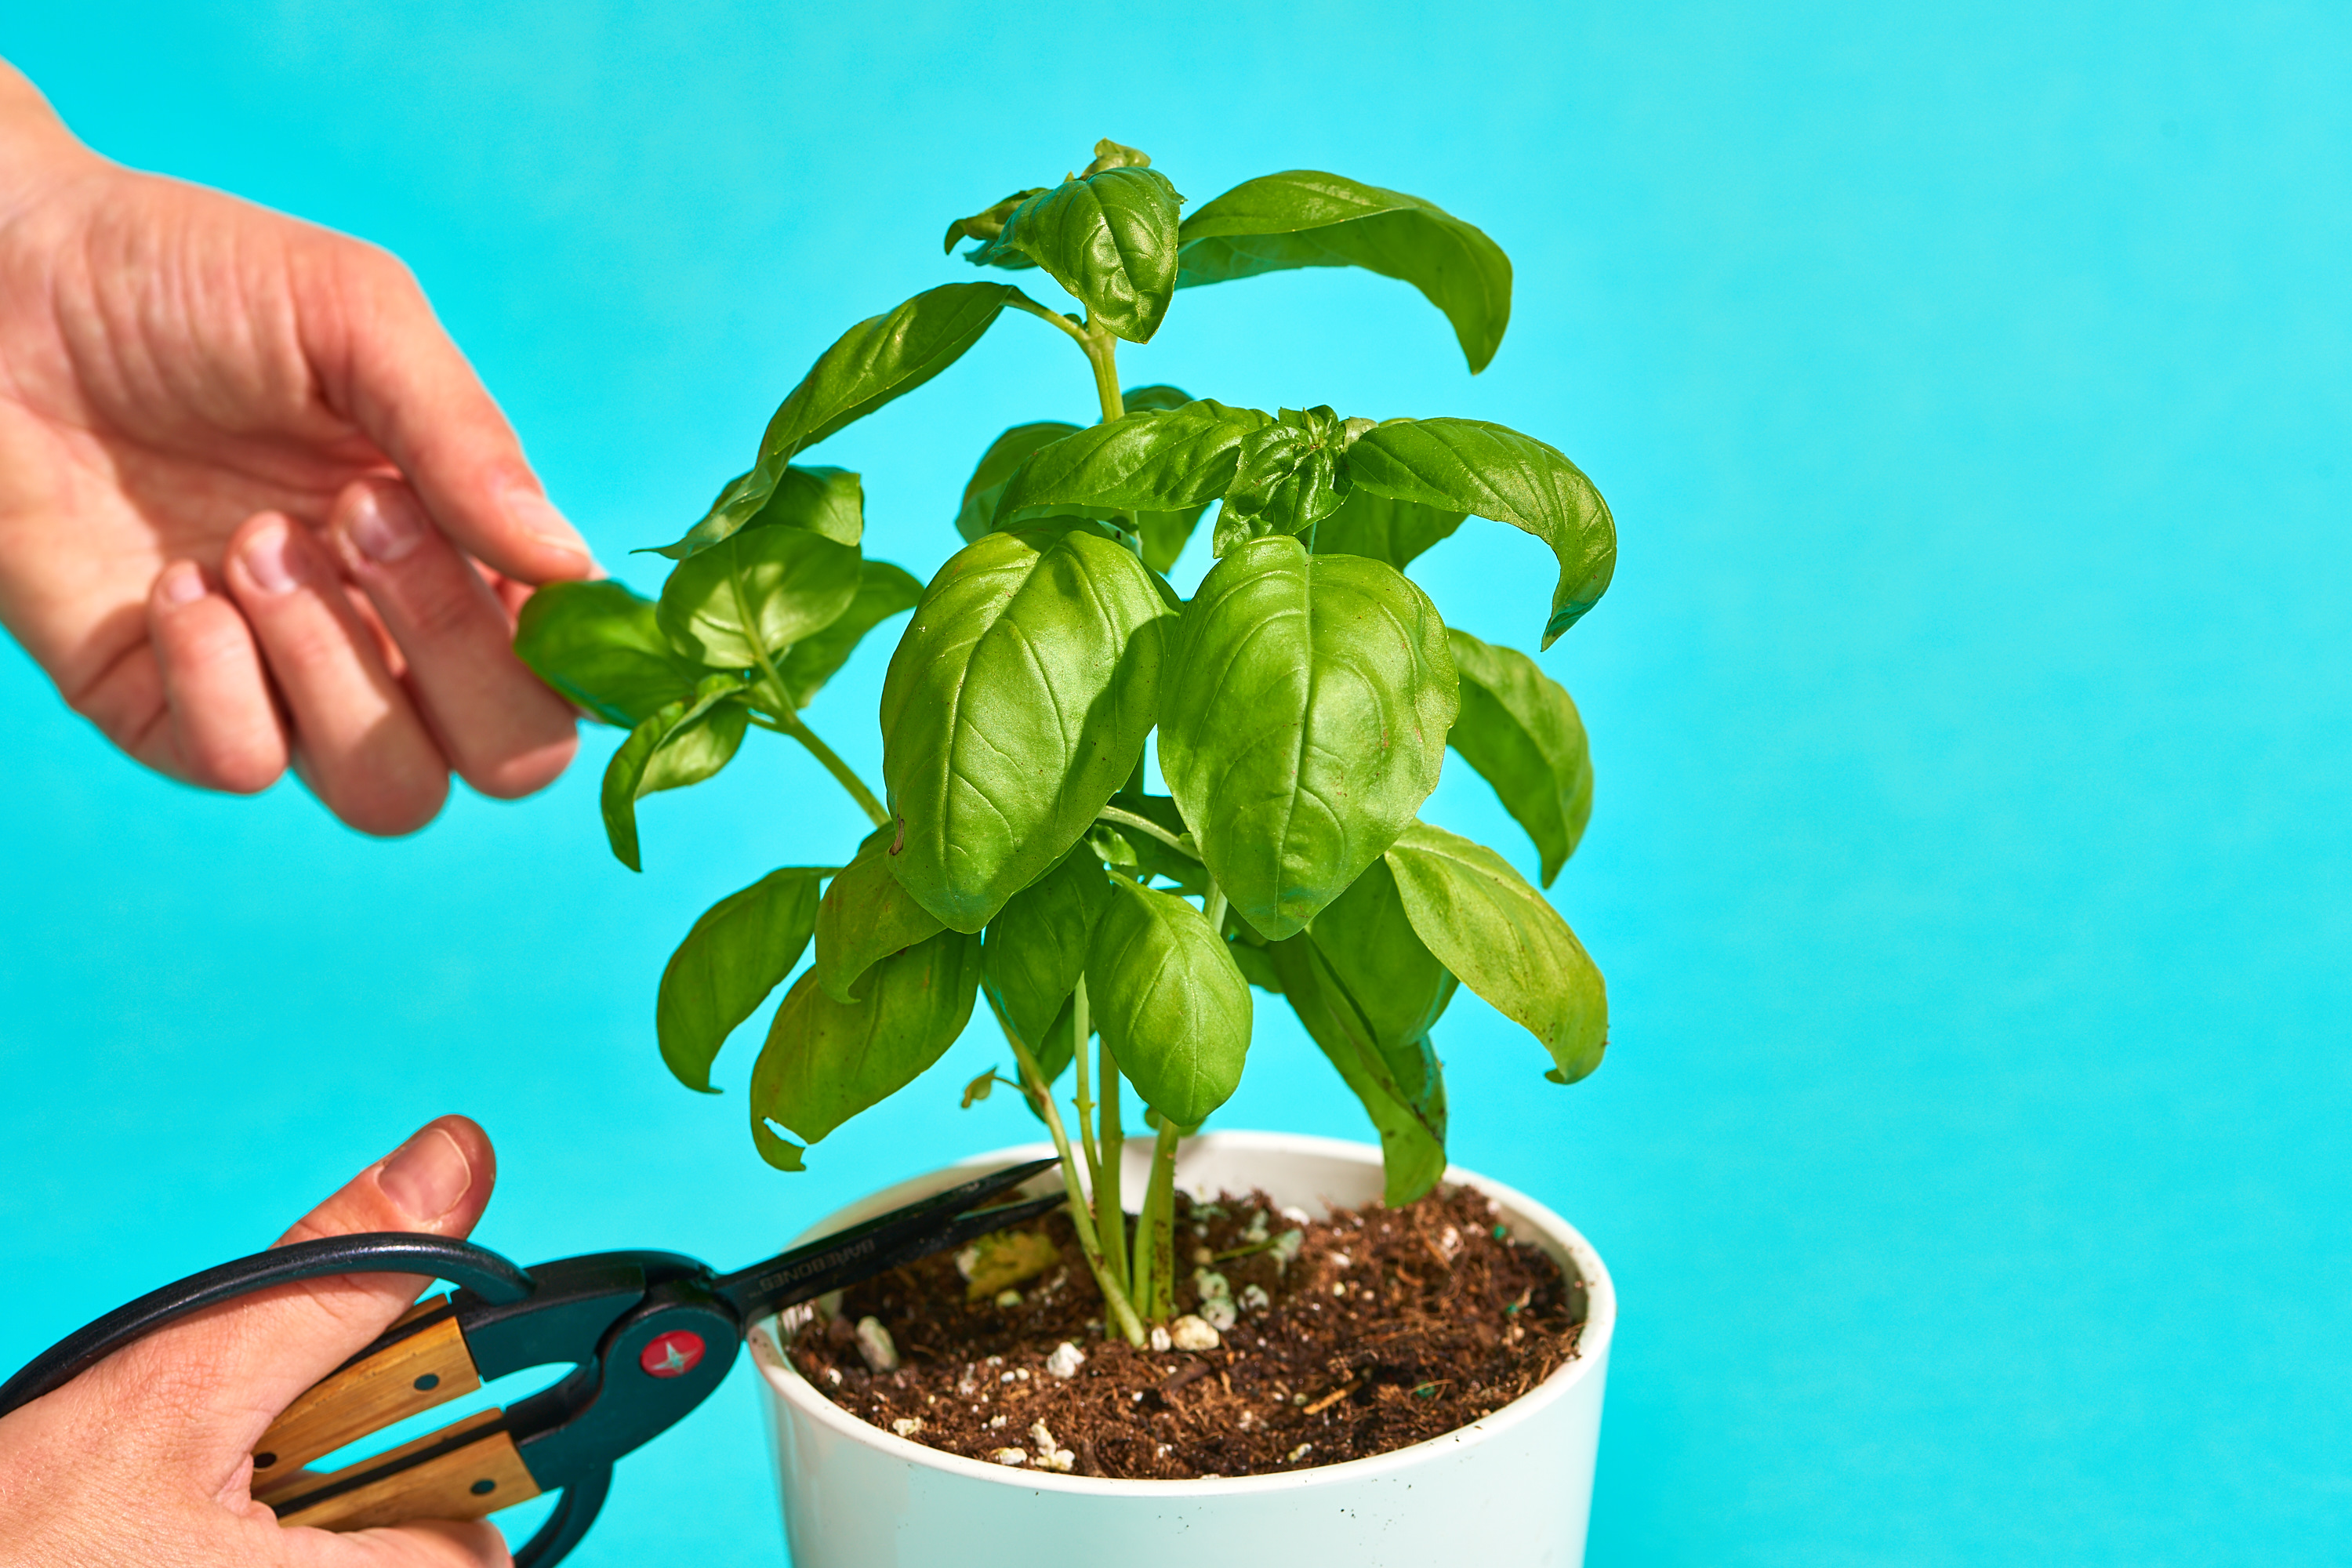 How To Harvest Basil: 5 Mistakes To Avoid